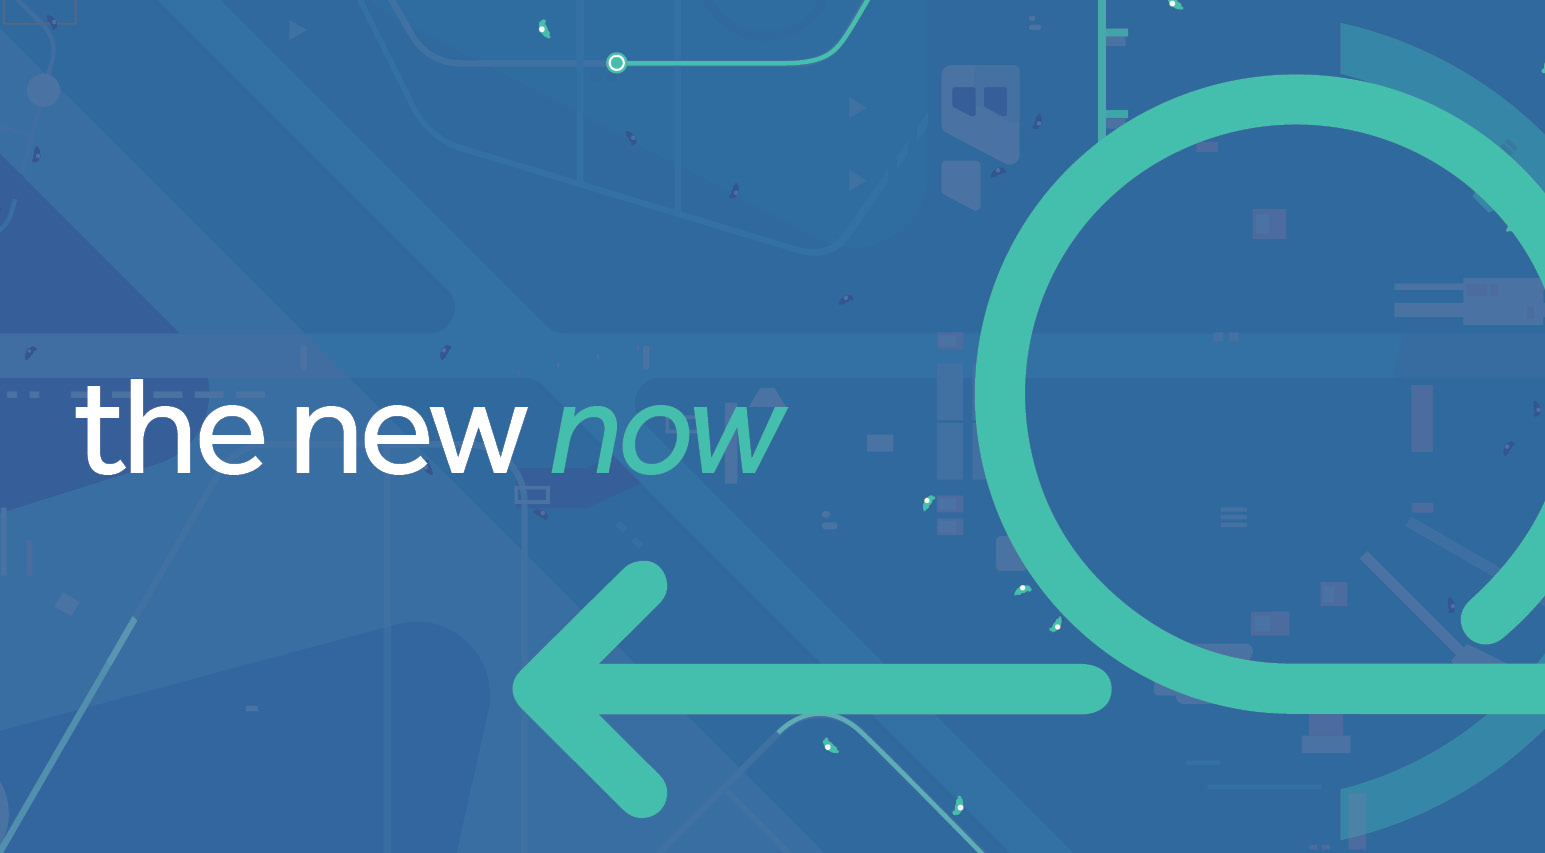 The new now: Return to work solutions